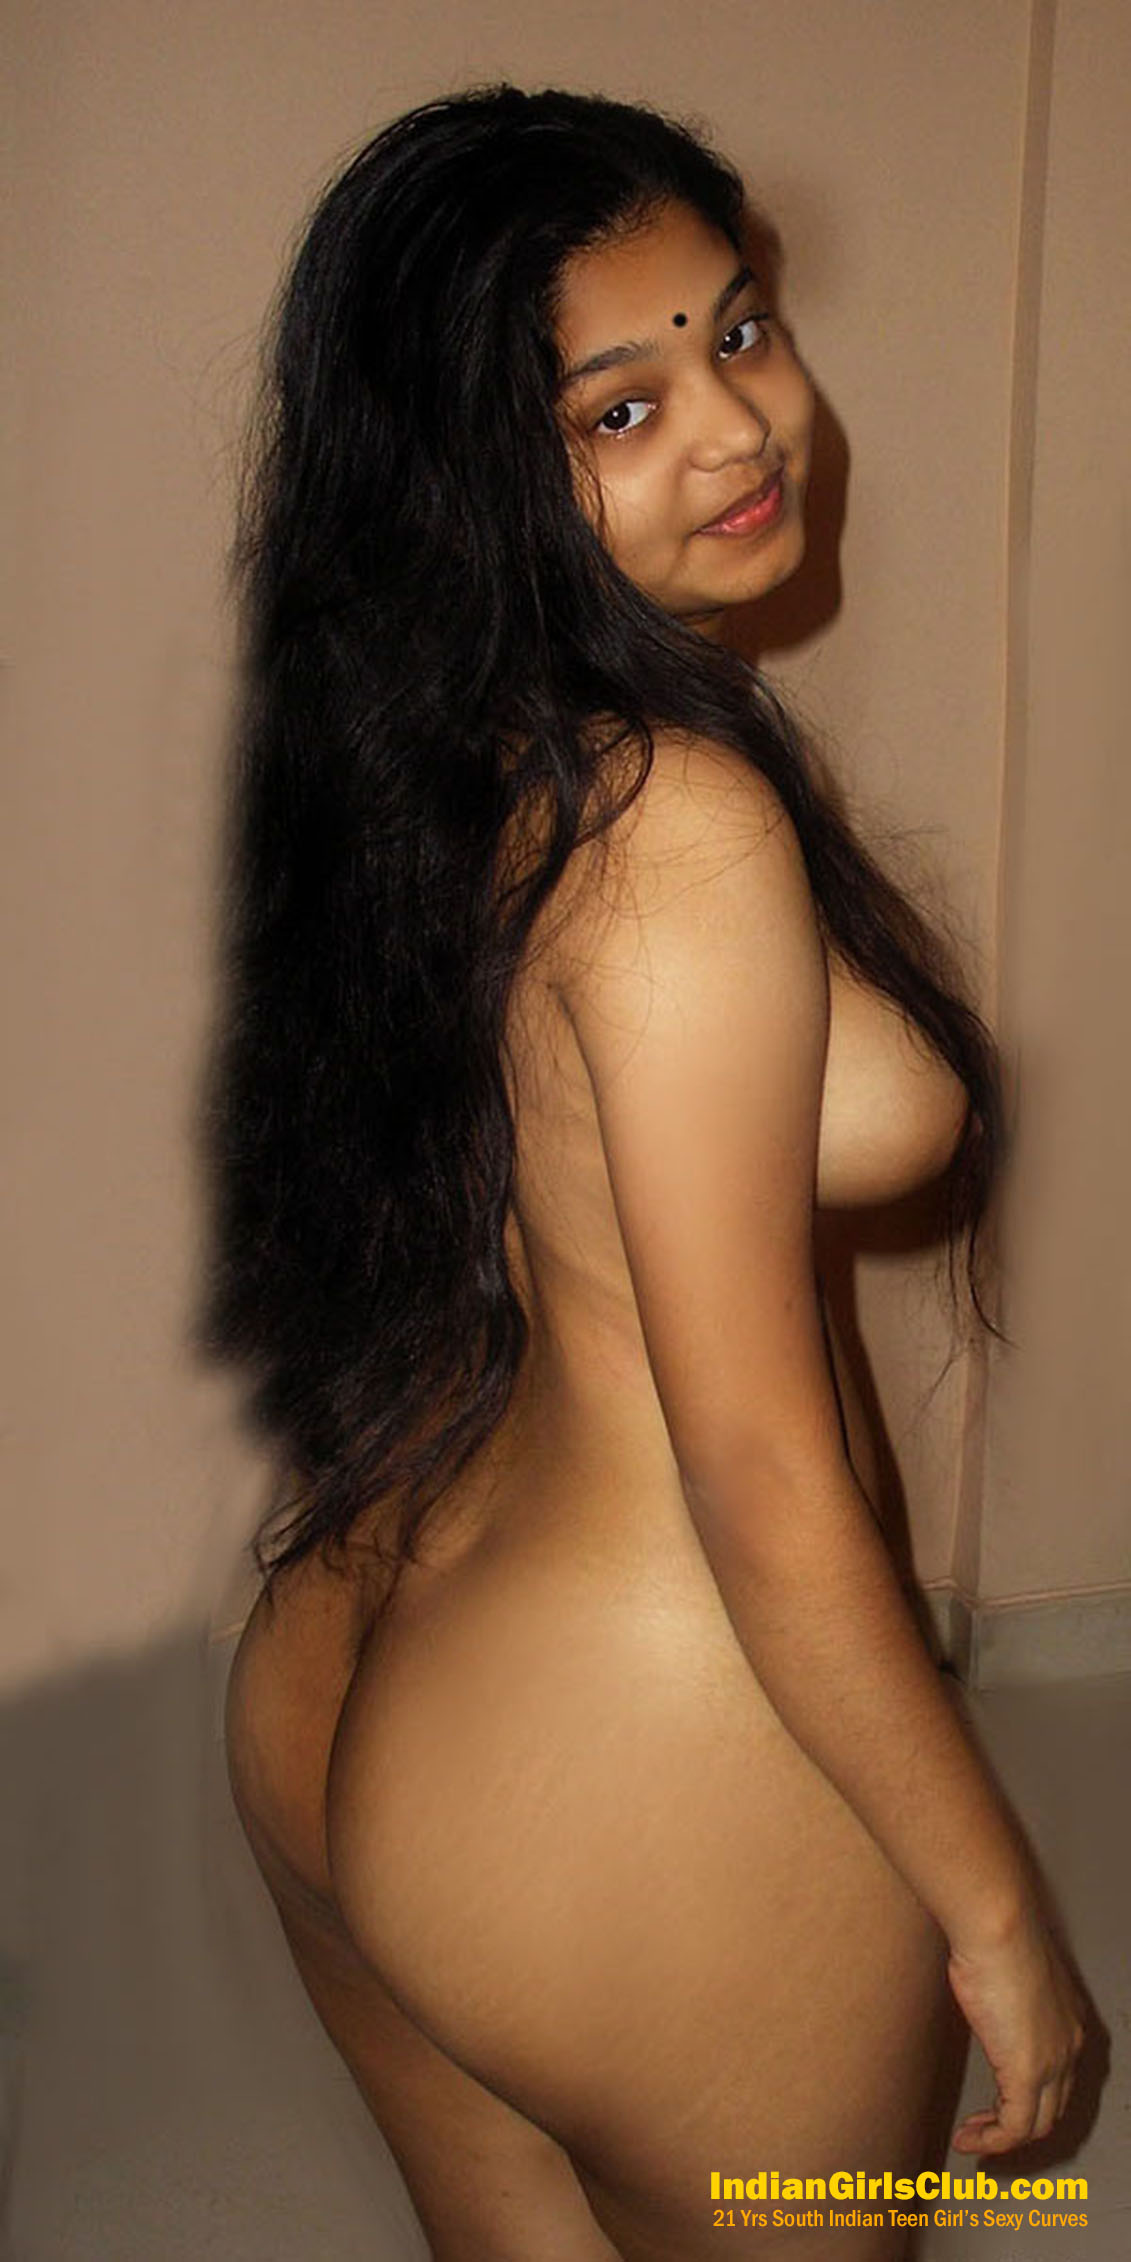 Actress from kolkata dancing nude 7